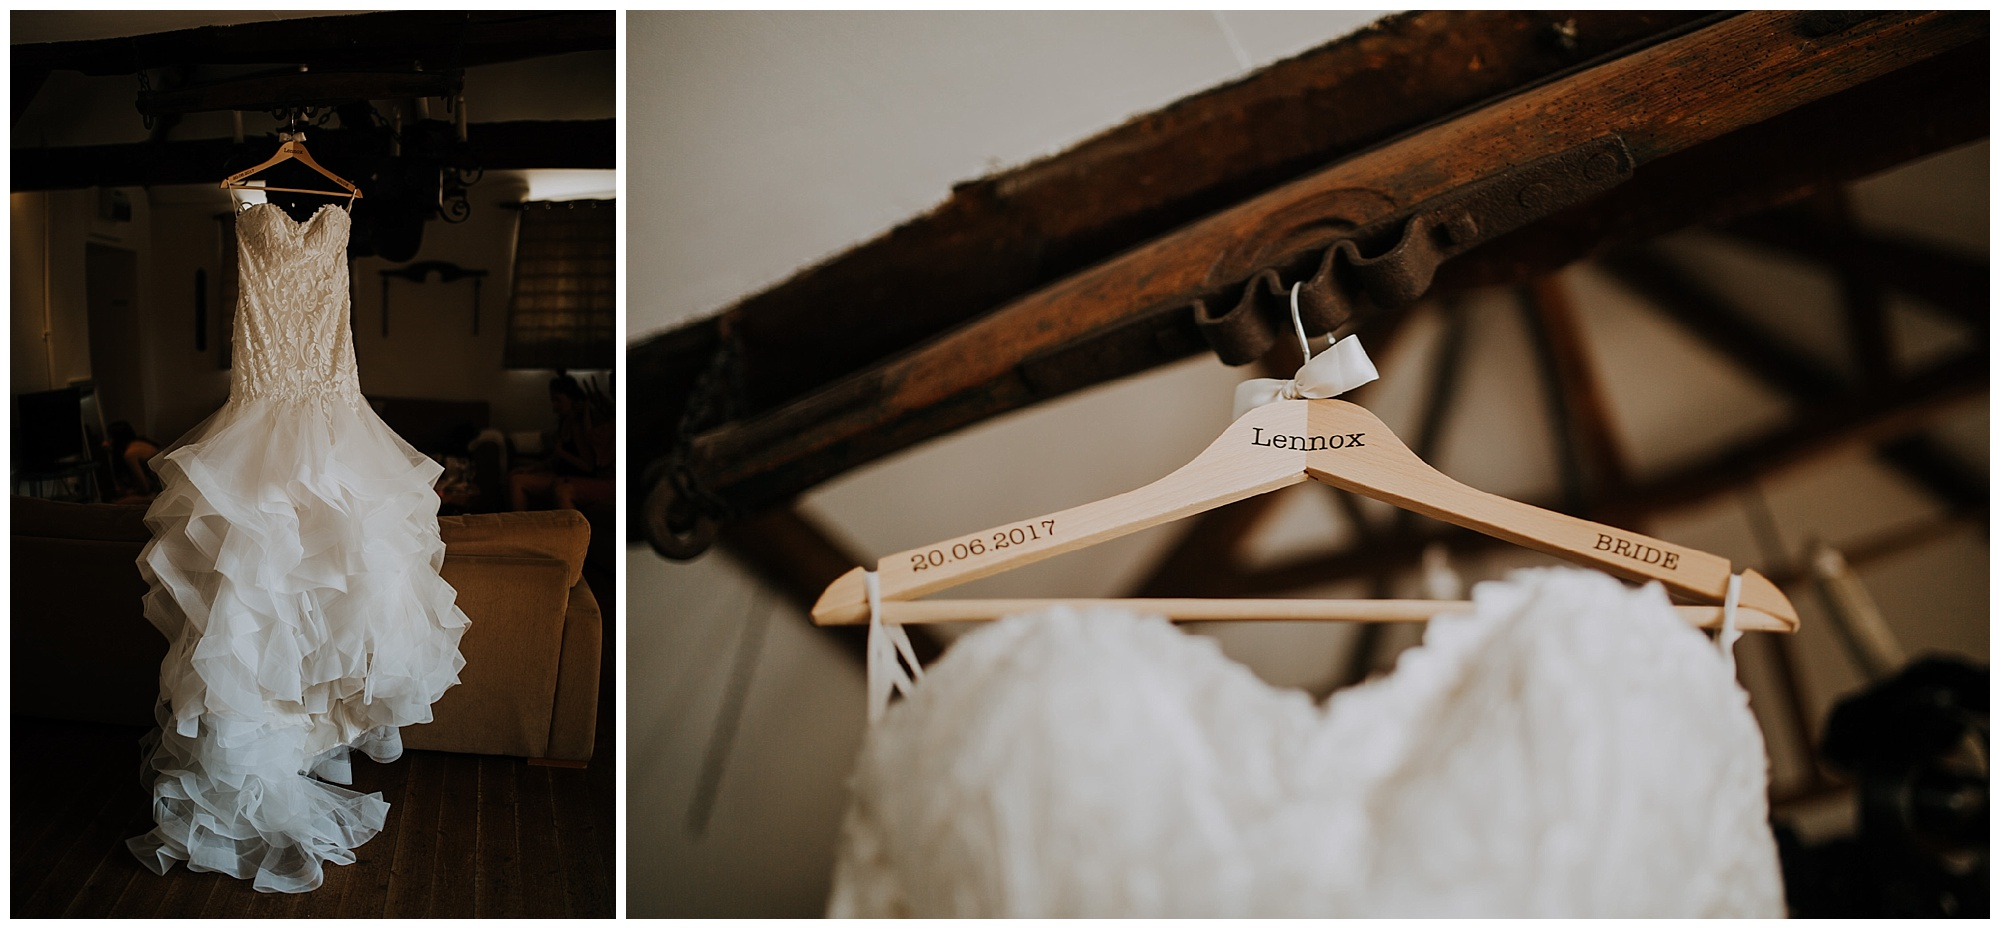 wedding dress hanging from beams